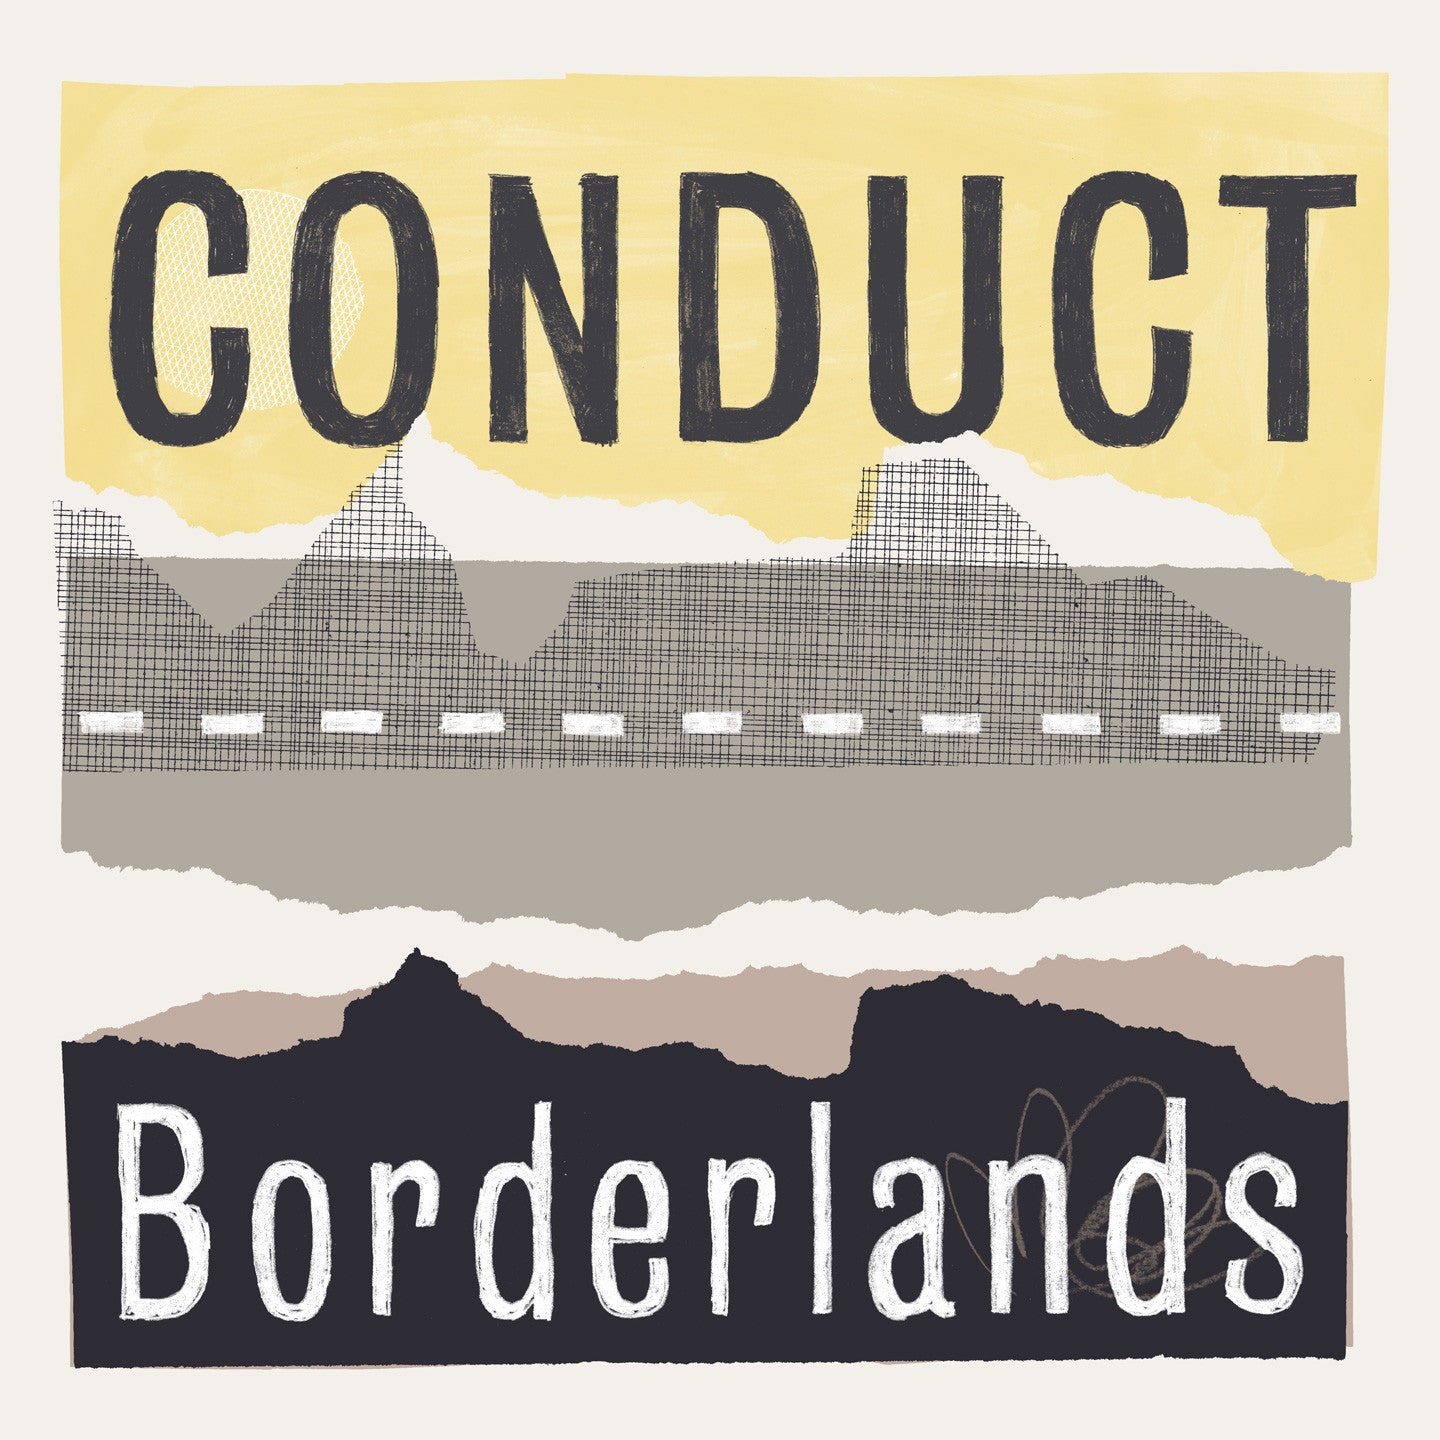 Conduct - Borderlands CD , CD - Blu Mar Ten Music, Unearthed Sounds